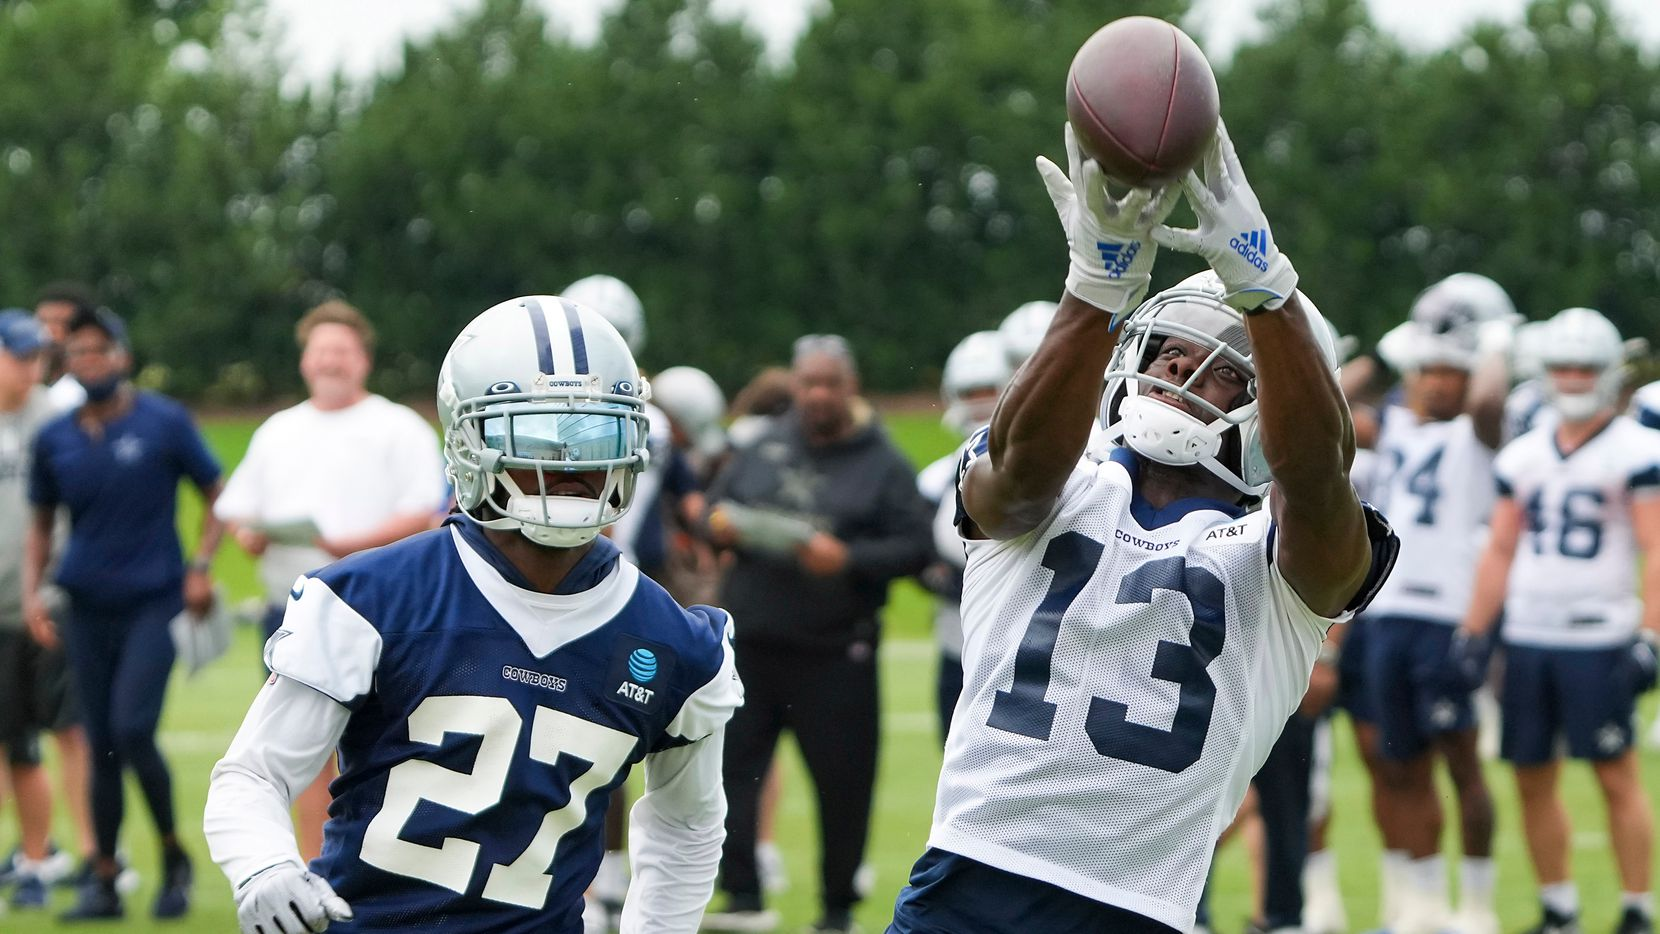 Dallas Cowboys wide receiver Michael Gallup (13) reaches for a pass as cornerback Trevon Diggs (27) defends during a minicamp practice at The Star on Wednesday, June 9, 2021, in Frisco. (Smiley N. Pool/The Dallas Morning News)